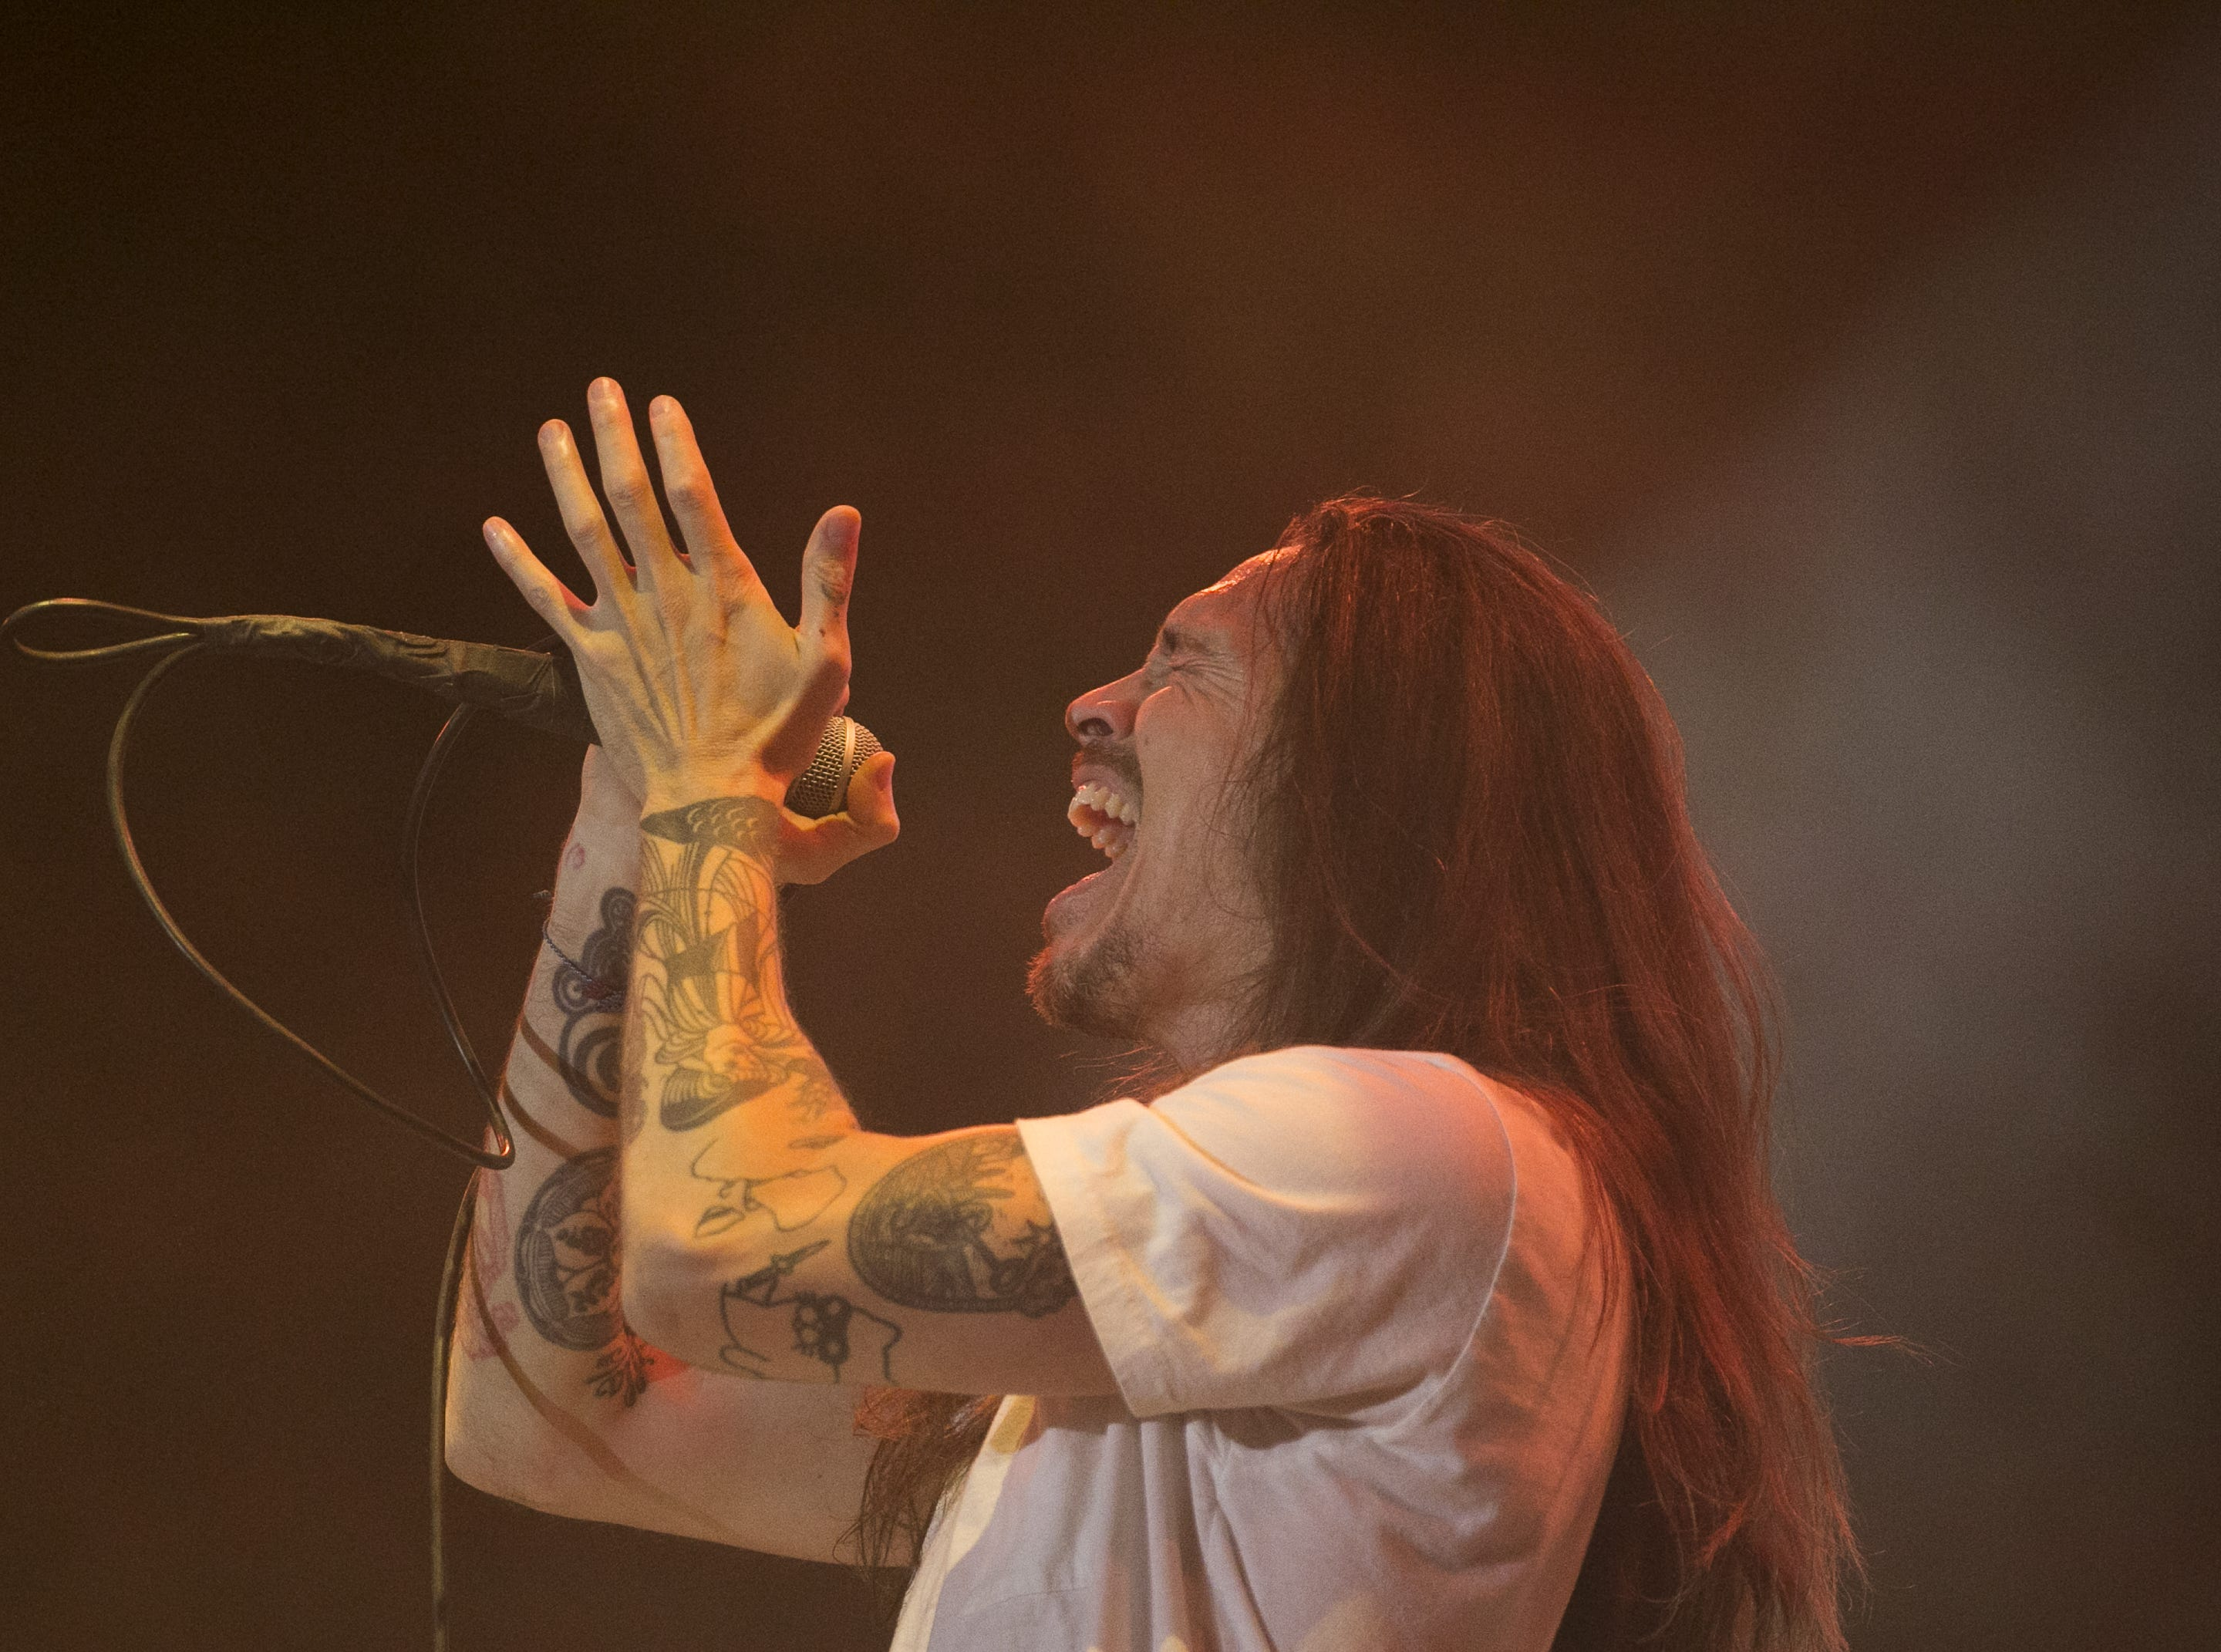 Incubus performs at the Innings Festival at Tempe Beach Park in on March 2, 2019.